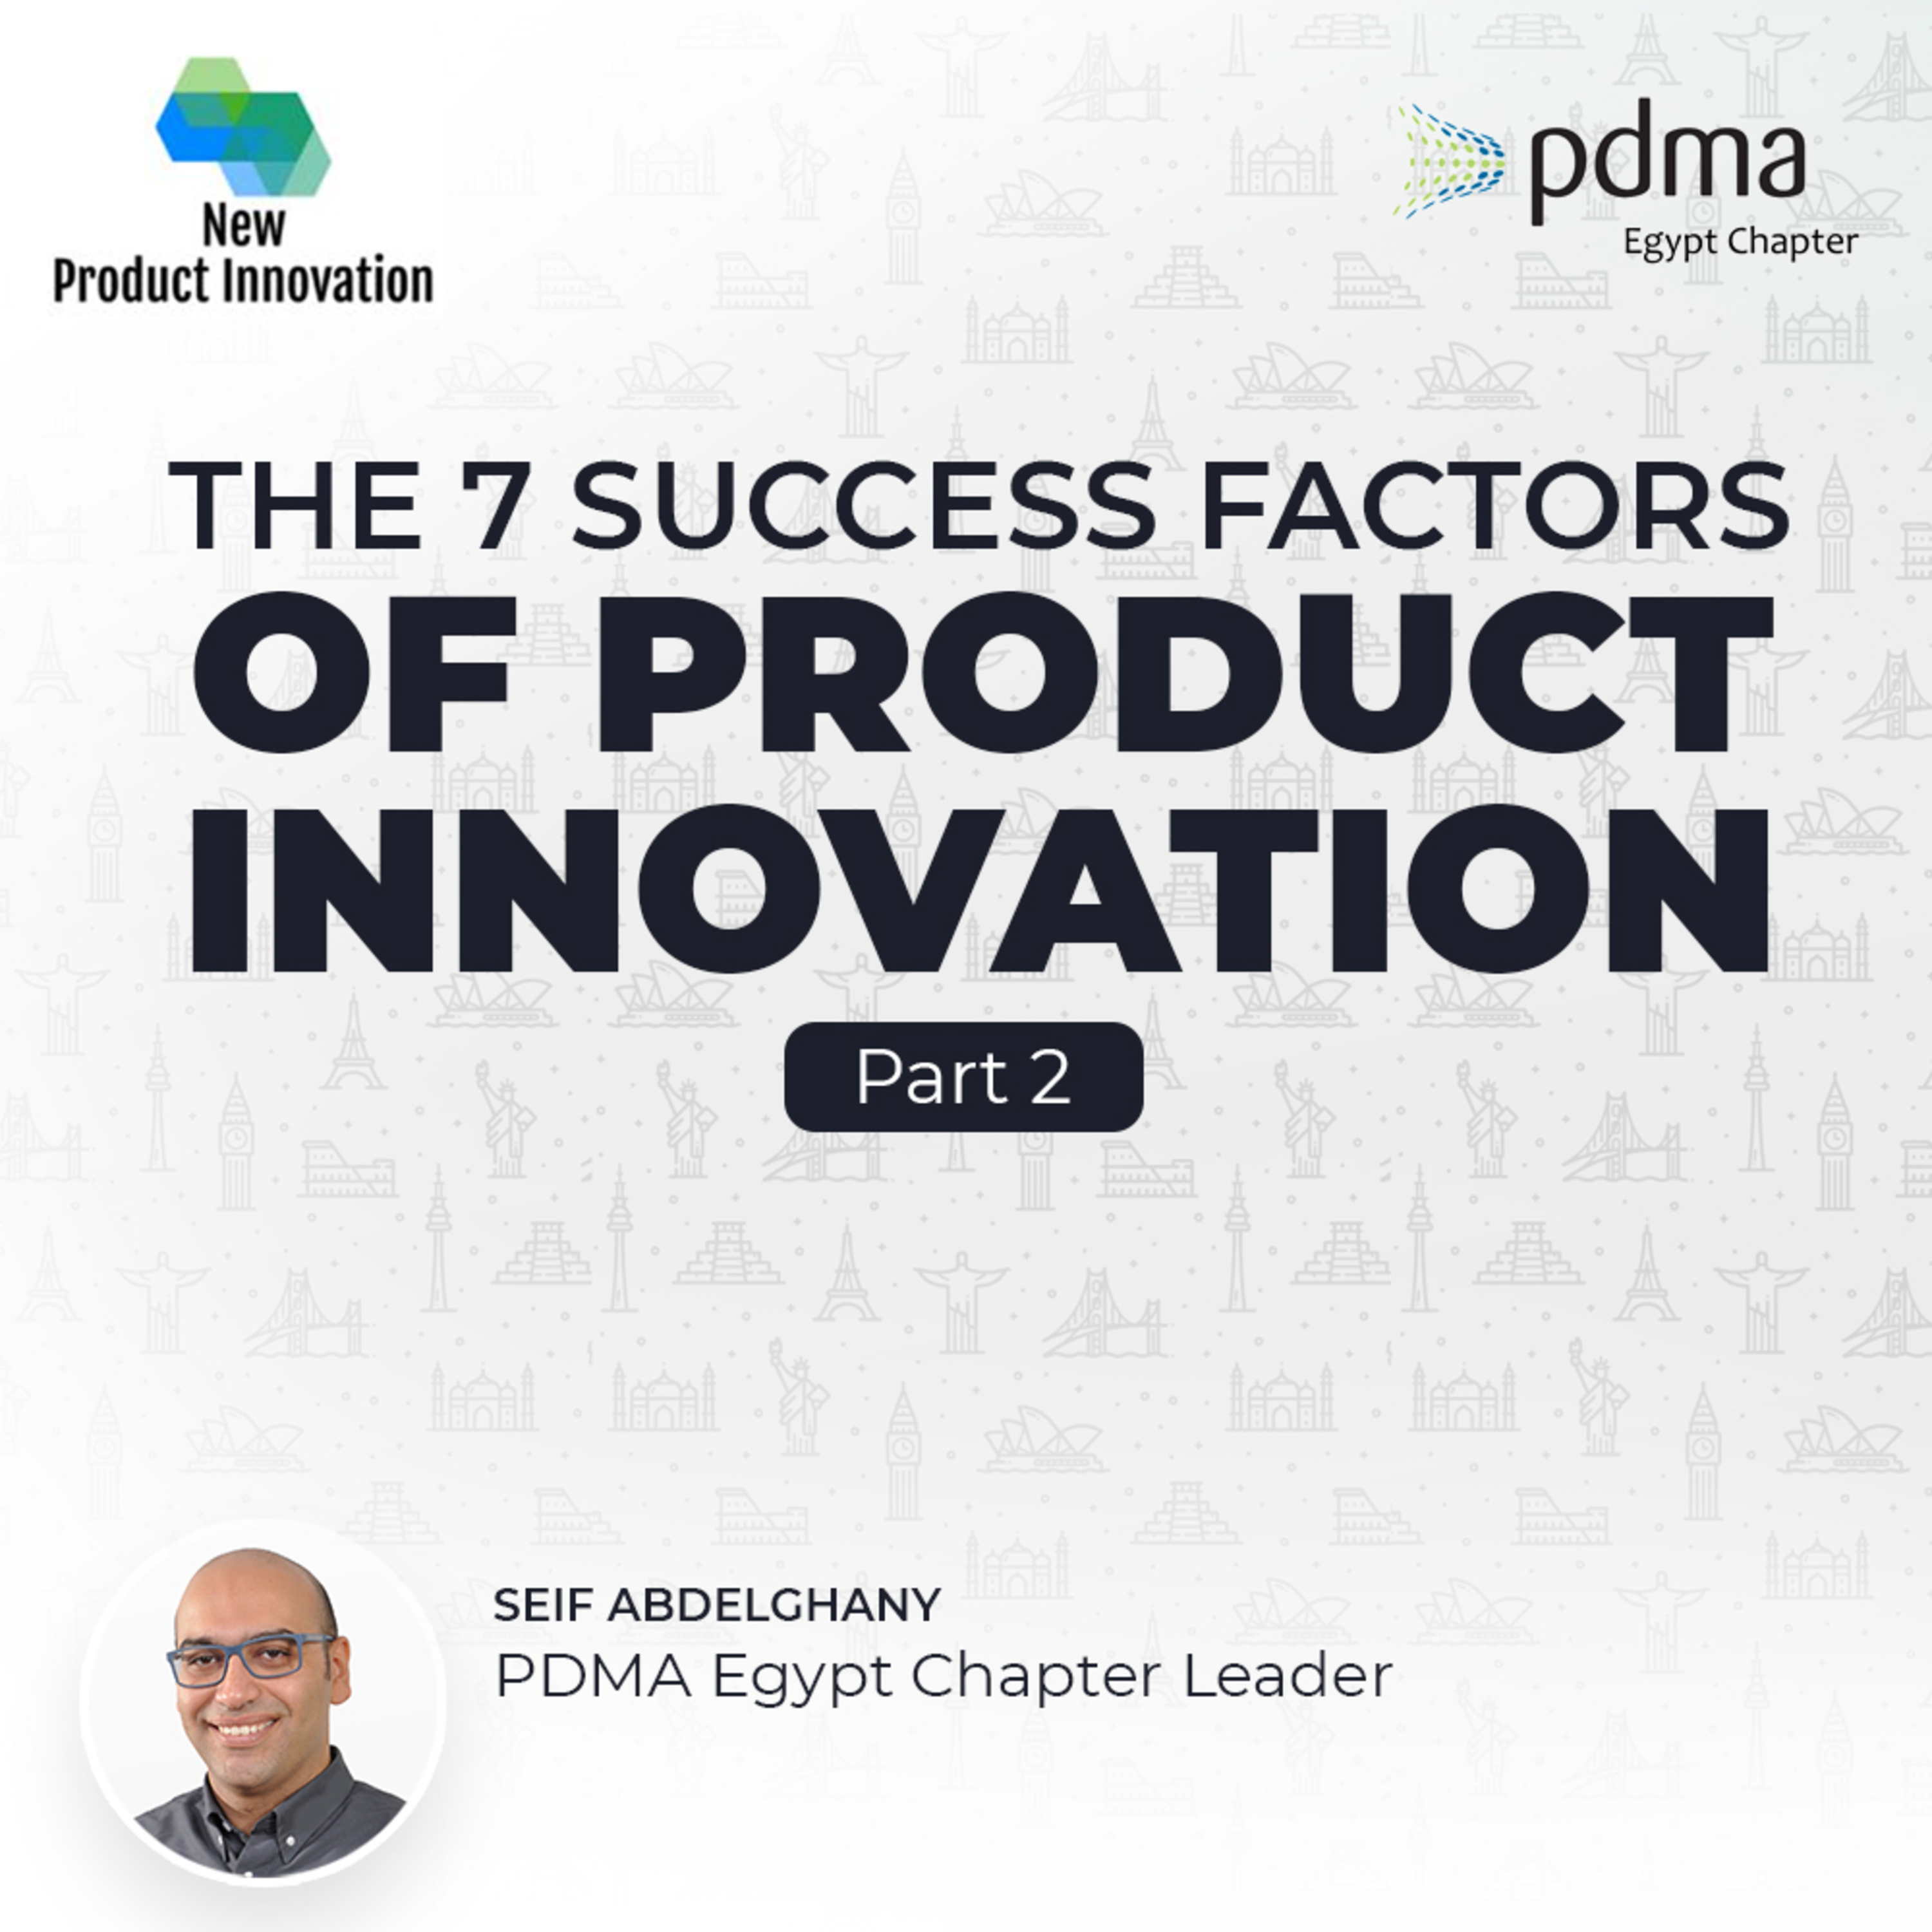 The Seven Success Drivers of Innovation - Part 2